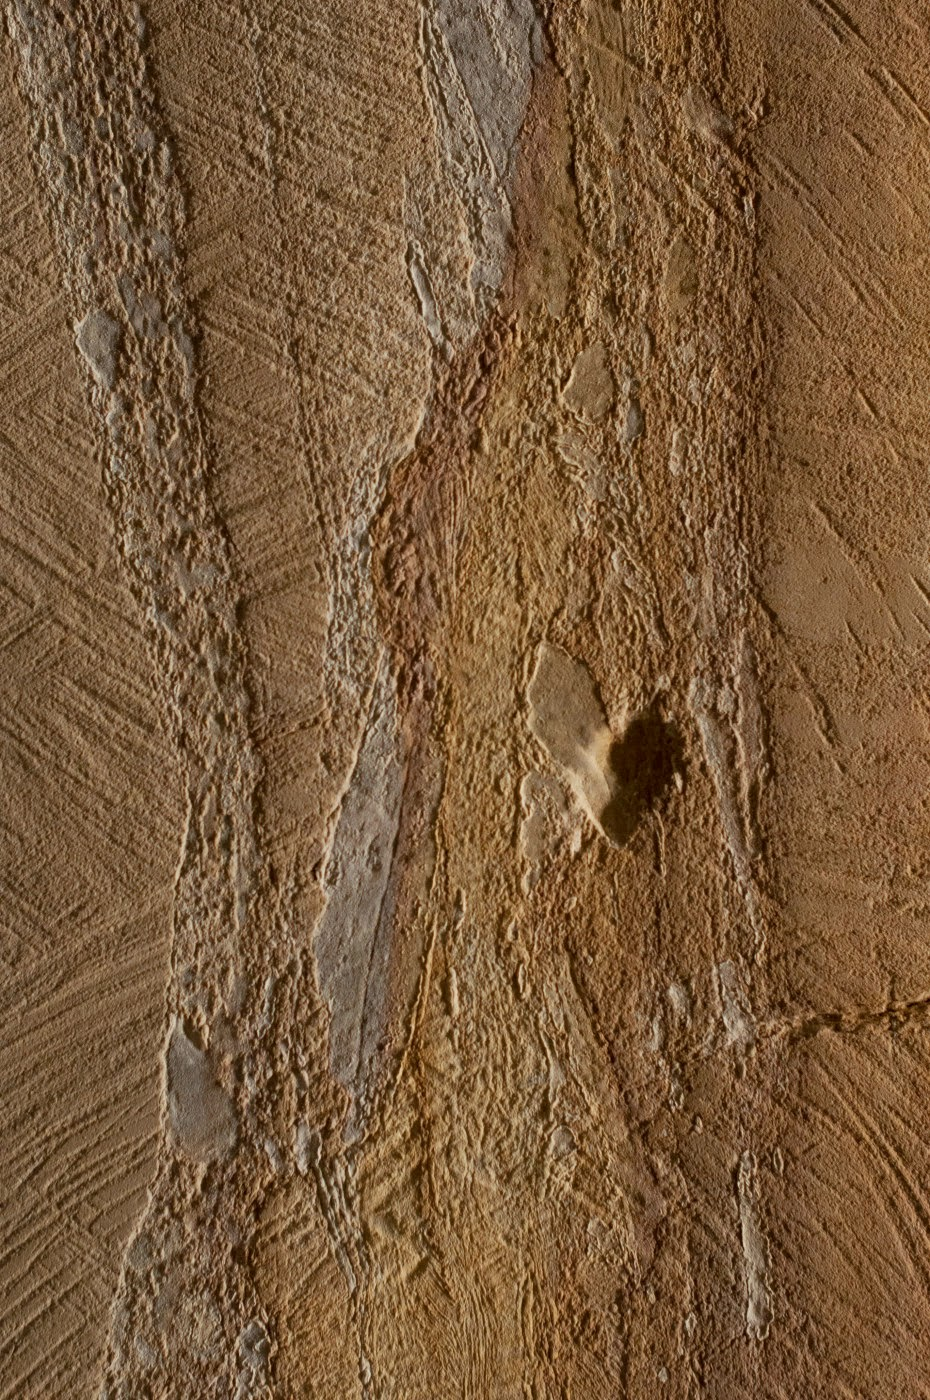 Underworld, tim Macauley, you won't see this at moma, the light monkey collective, mona, the museum of old and new art, Hobart, Tasmania, photographic art, the light monkey collective, abstract, abstraction, graphic, graphical, sandstone,  rock face